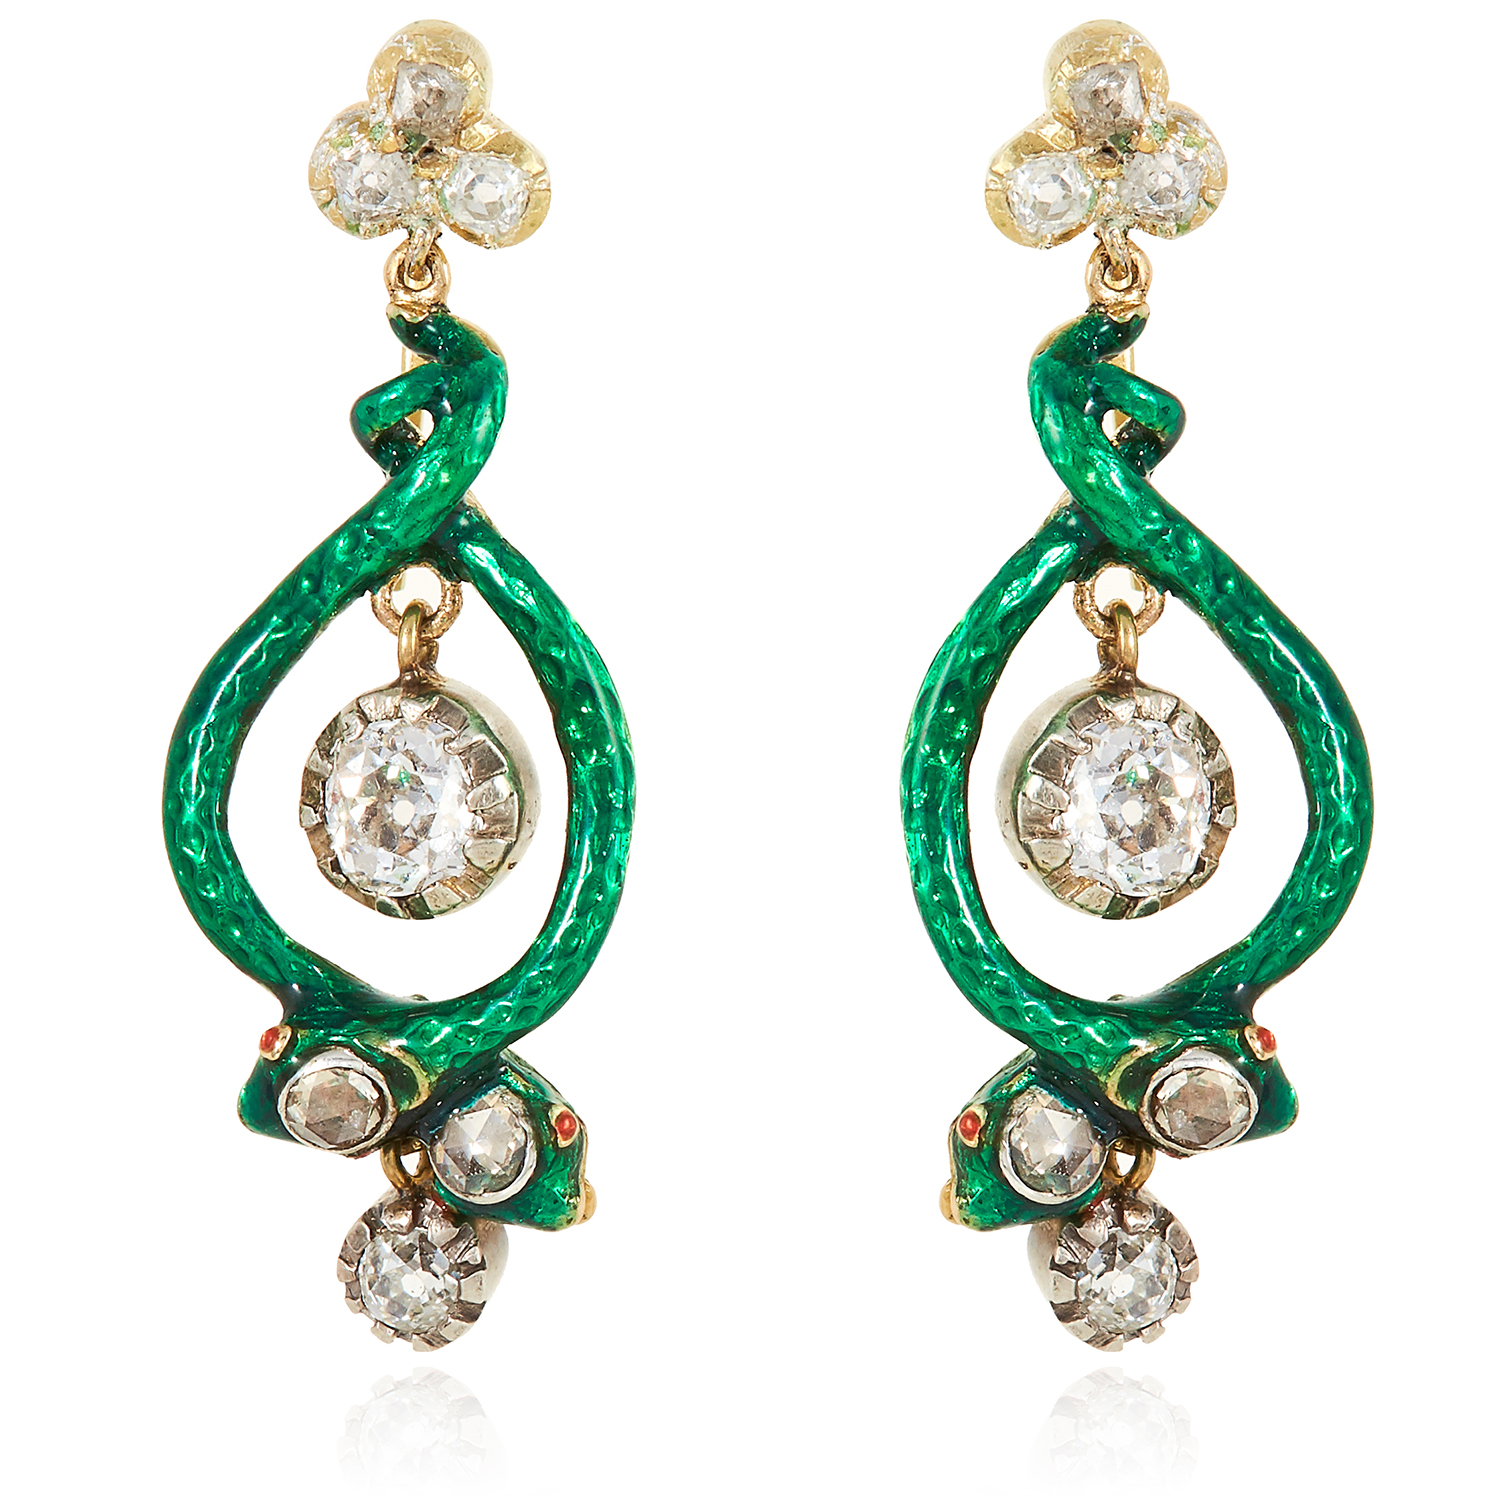 A PAIR OF ANTIQUE DIAMOND AND ENAMEL SNAKE EARRINGS in high carat yellow gold and silver, each